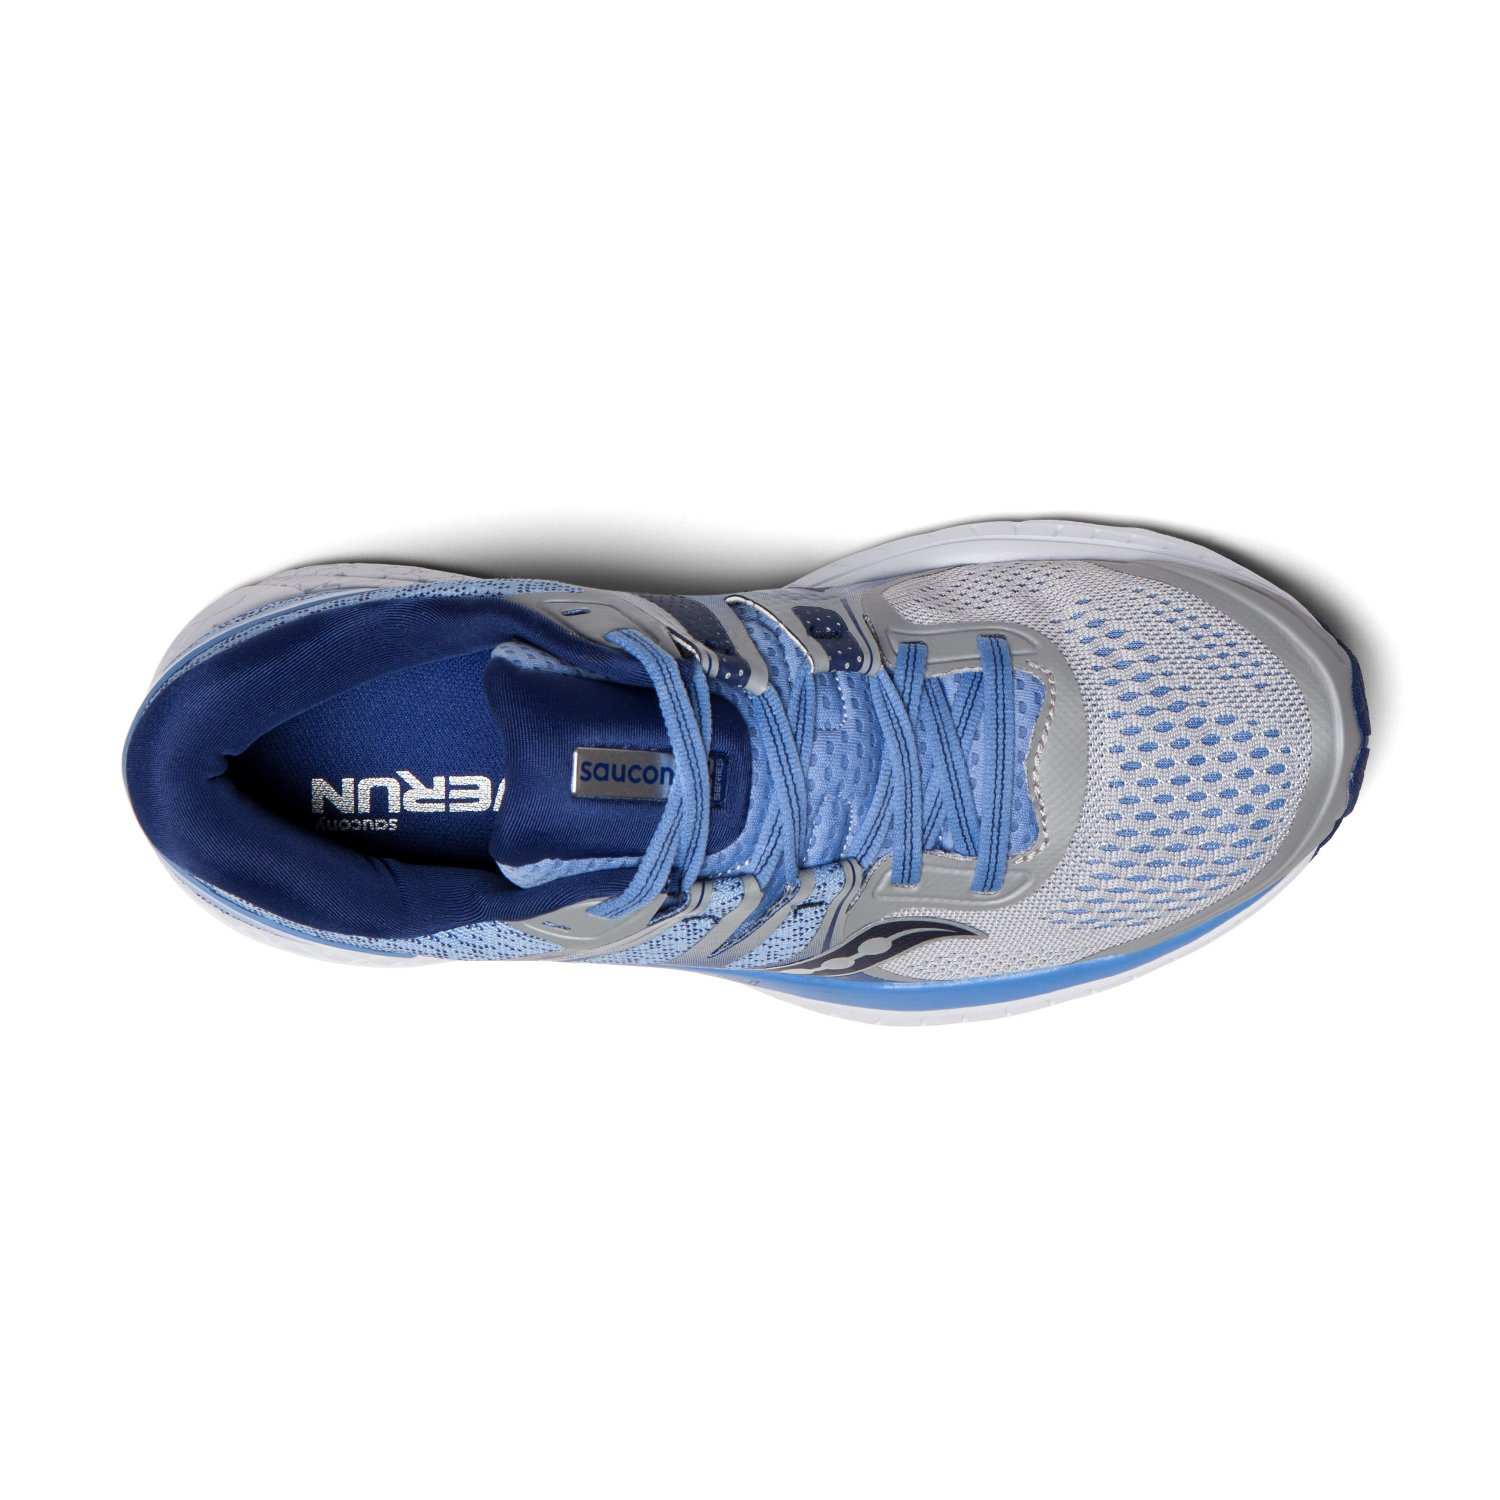 Saucony Women's Omni ISO Running Shoes B07D95NQ42 11.5 C/D US|Silver/Blue/Navy